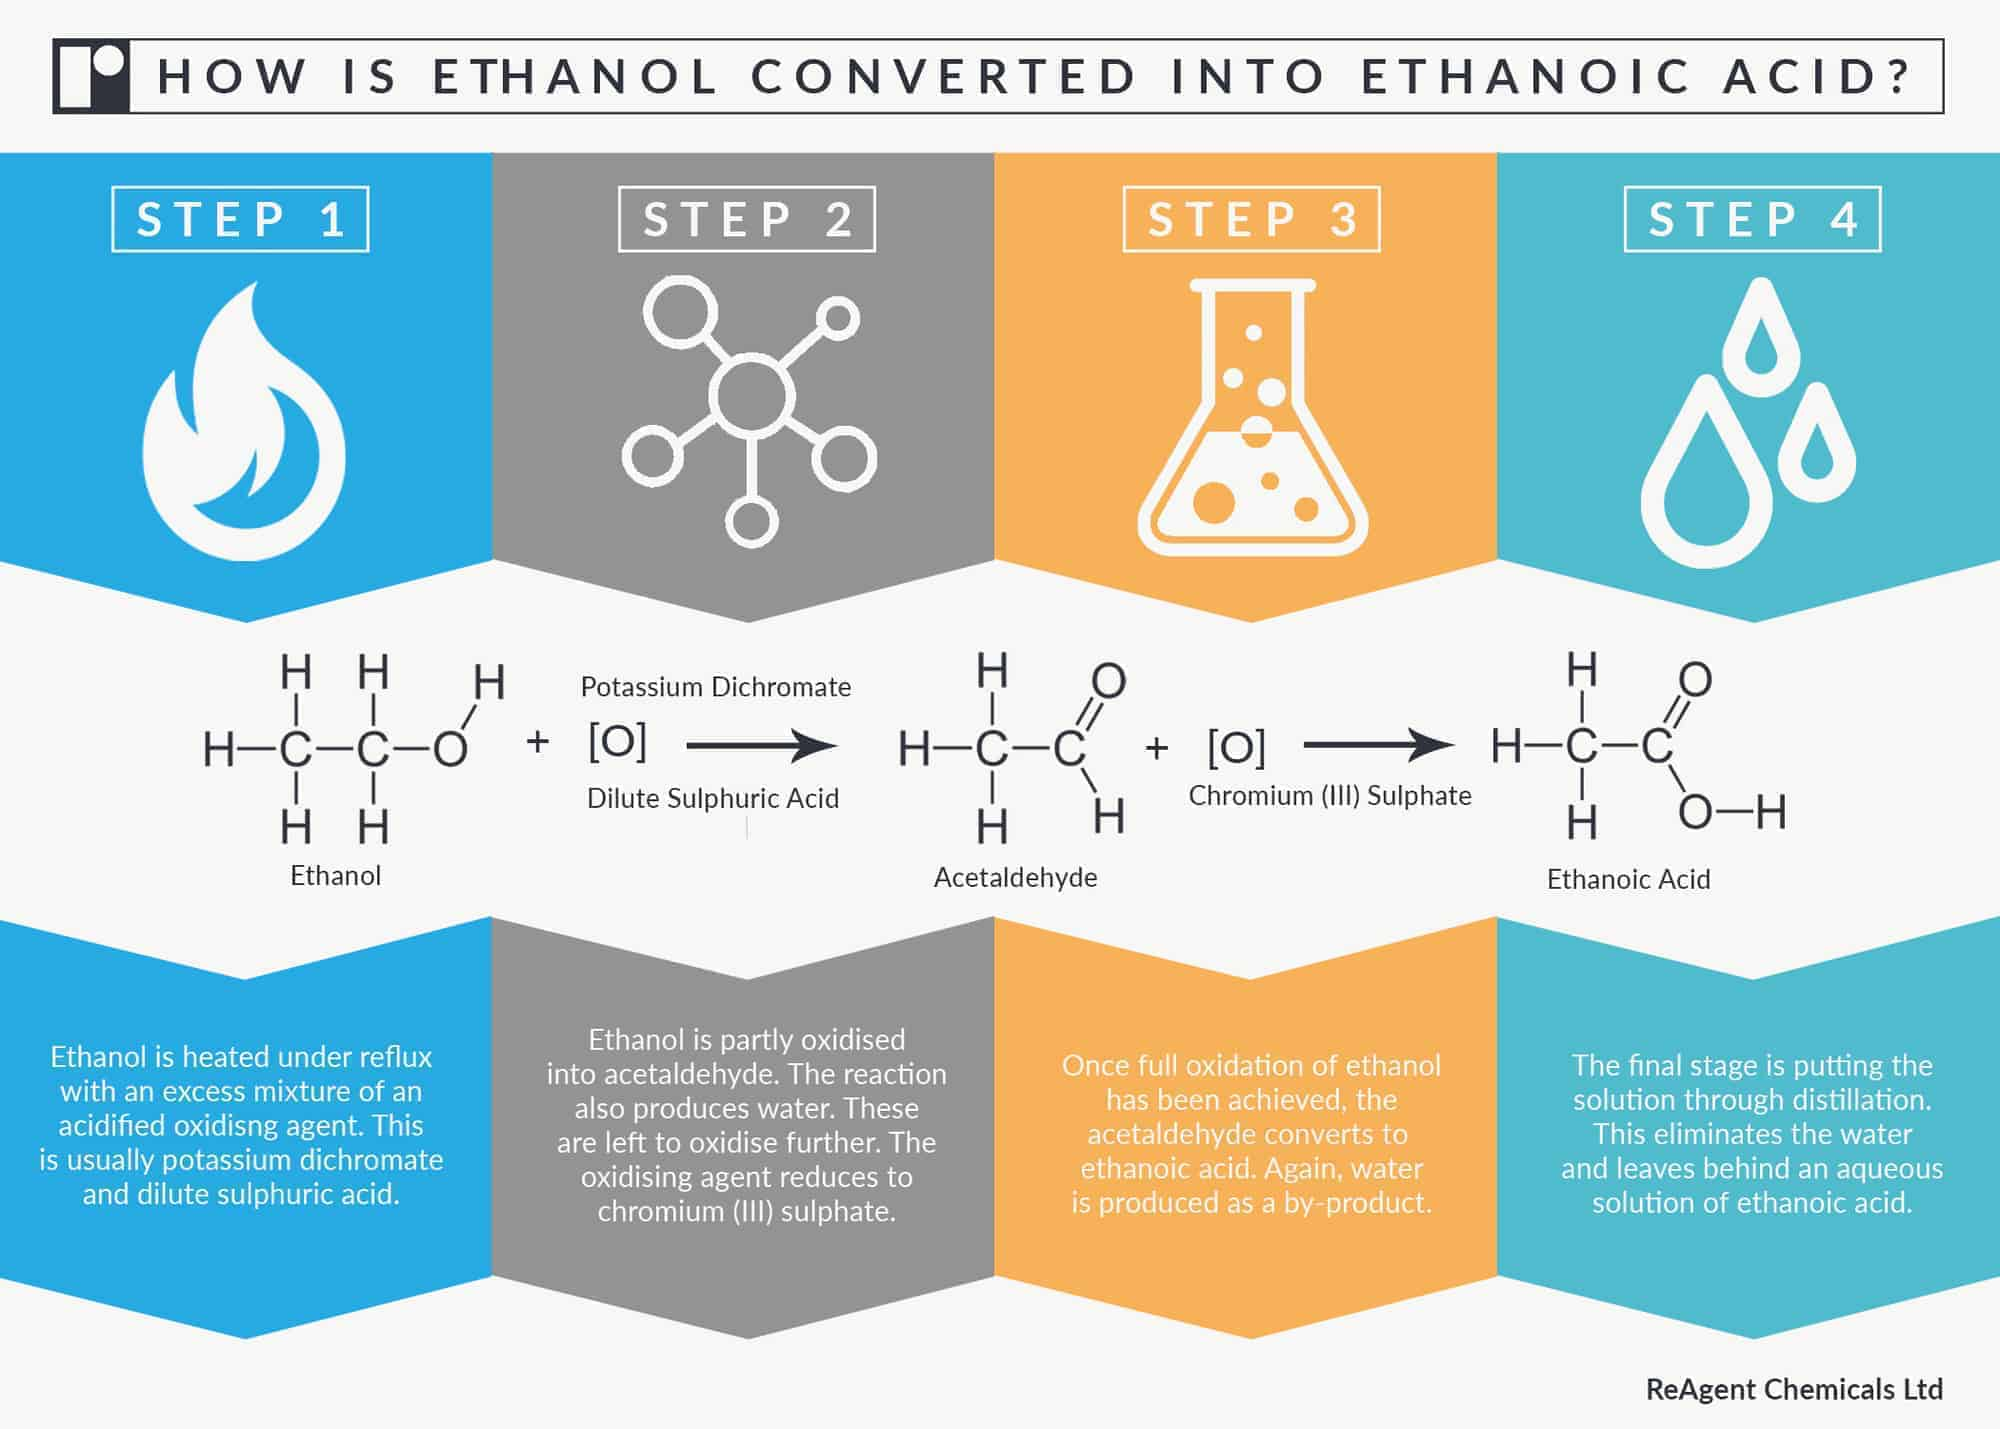 Infographic showing process of how ethanol is converted into ethanoic acid